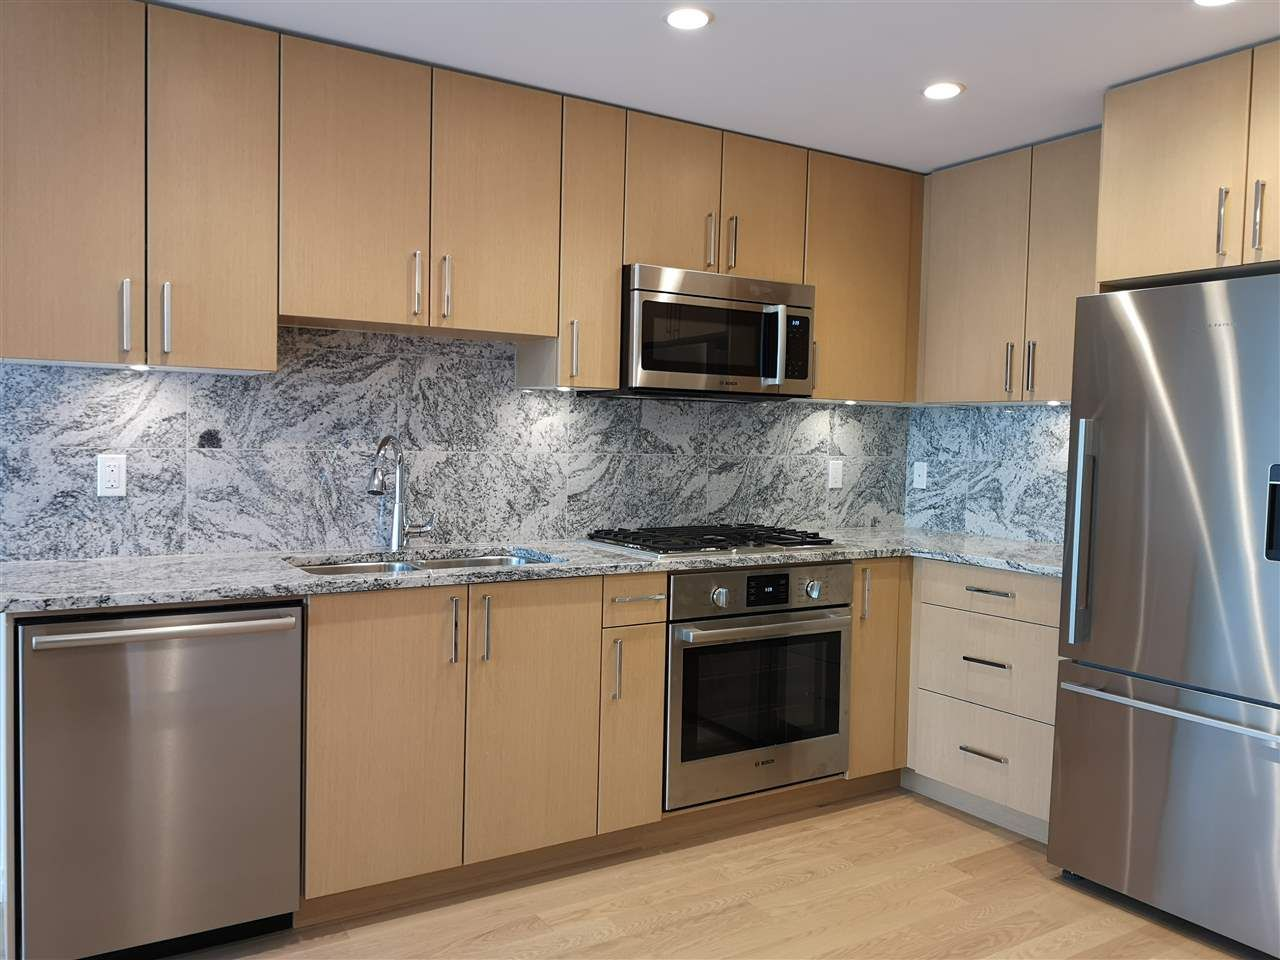 """Main Photo: 601 1708 ONTARIO Street in Vancouver: Mount Pleasant VE Condo for sale in """"PINNACLE ON THE PARK"""" (Vancouver East)  : MLS®# R2533031"""